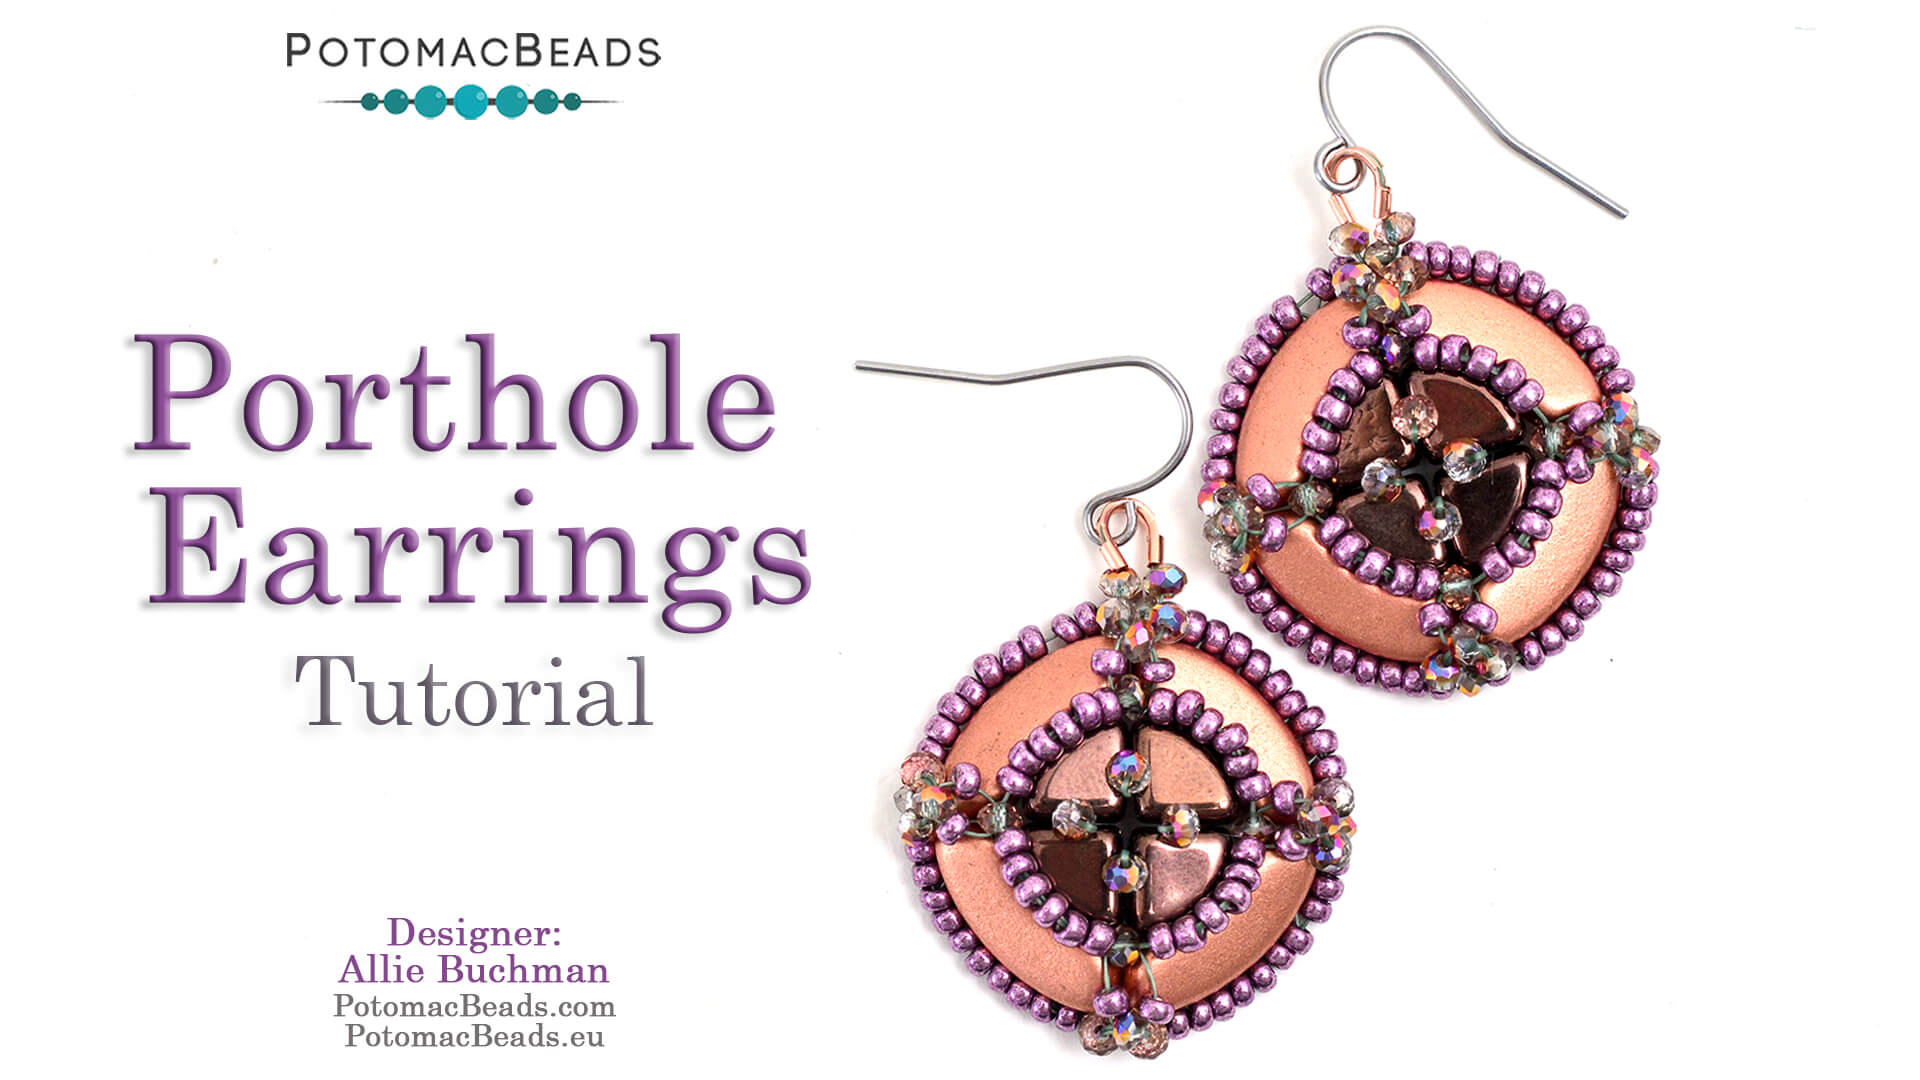 How to Bead Jewelry / Videos Sorted by Beads / QuadBow & PieDuo Bead Videos / Porthole Earrings Tutorial